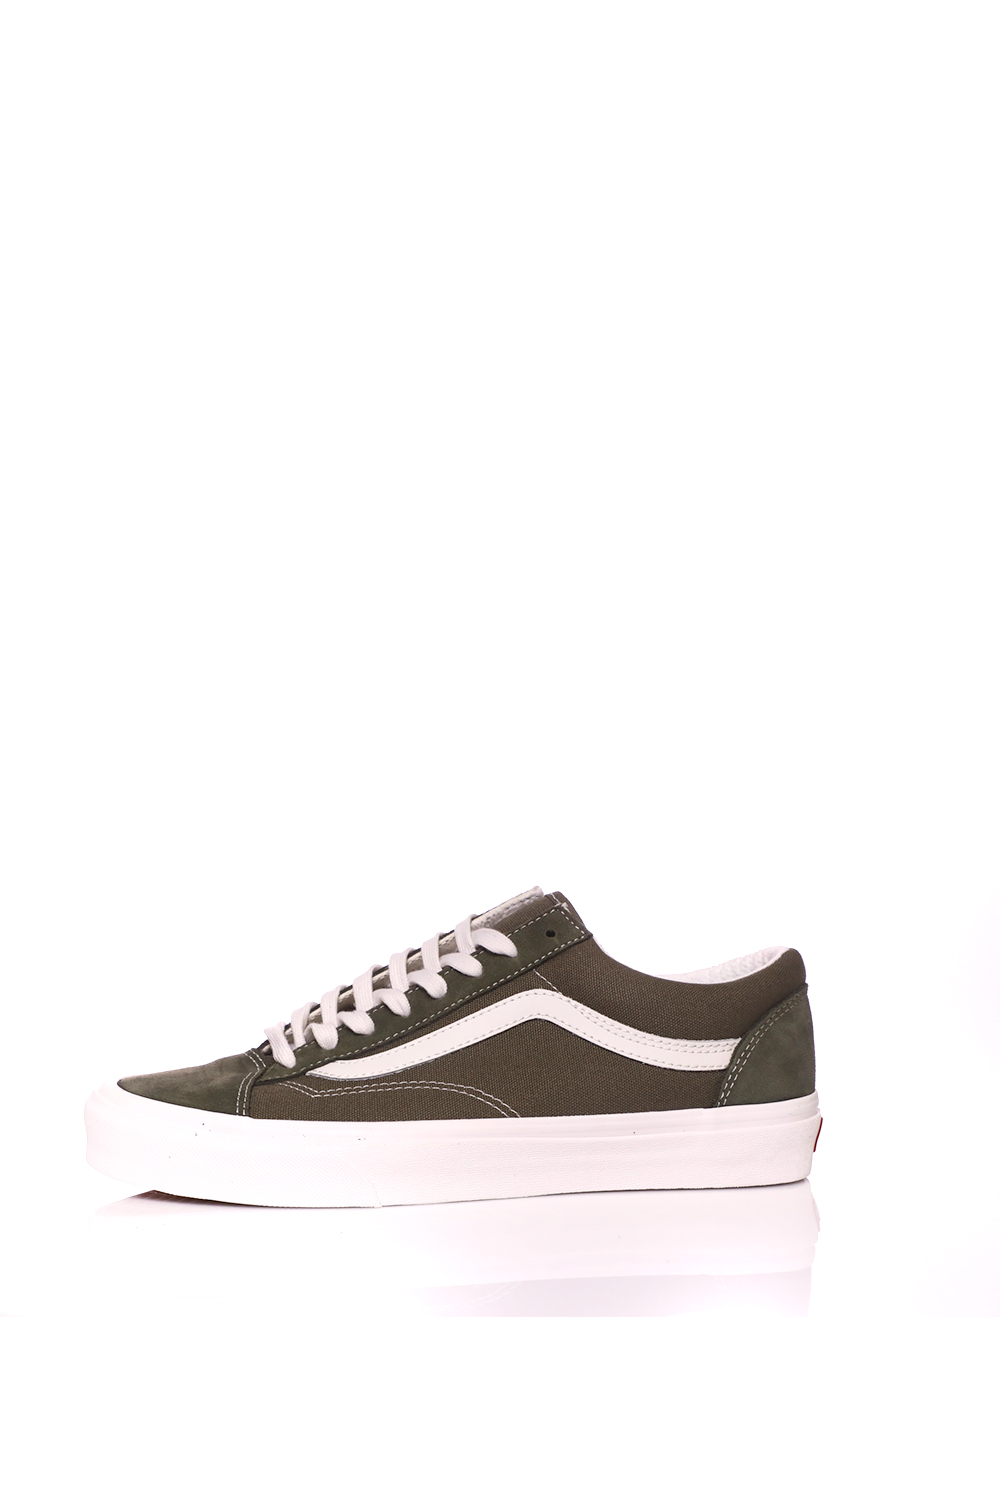 e31cb146524 Collective Online VANS – Unisex sneakers Vans STYLE 36 πράσινα